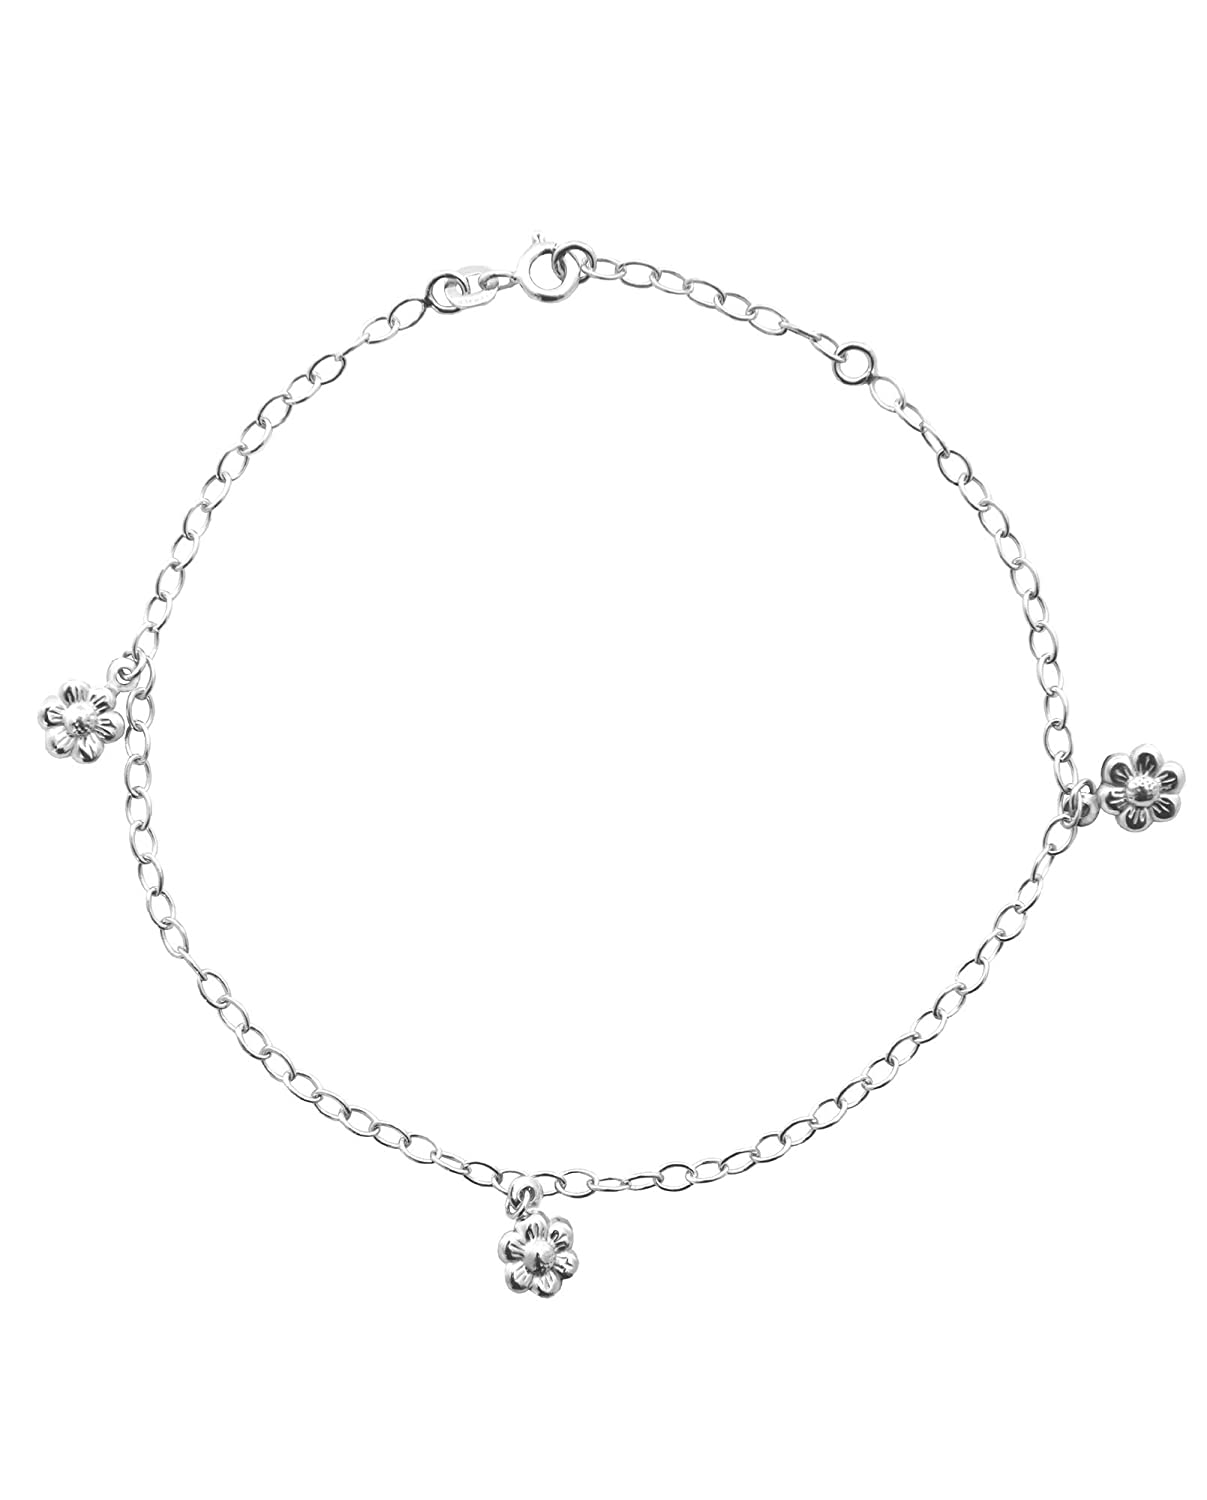 Sterling Silver Anklet Ankle Bracelet with Daisy Flower Dangles